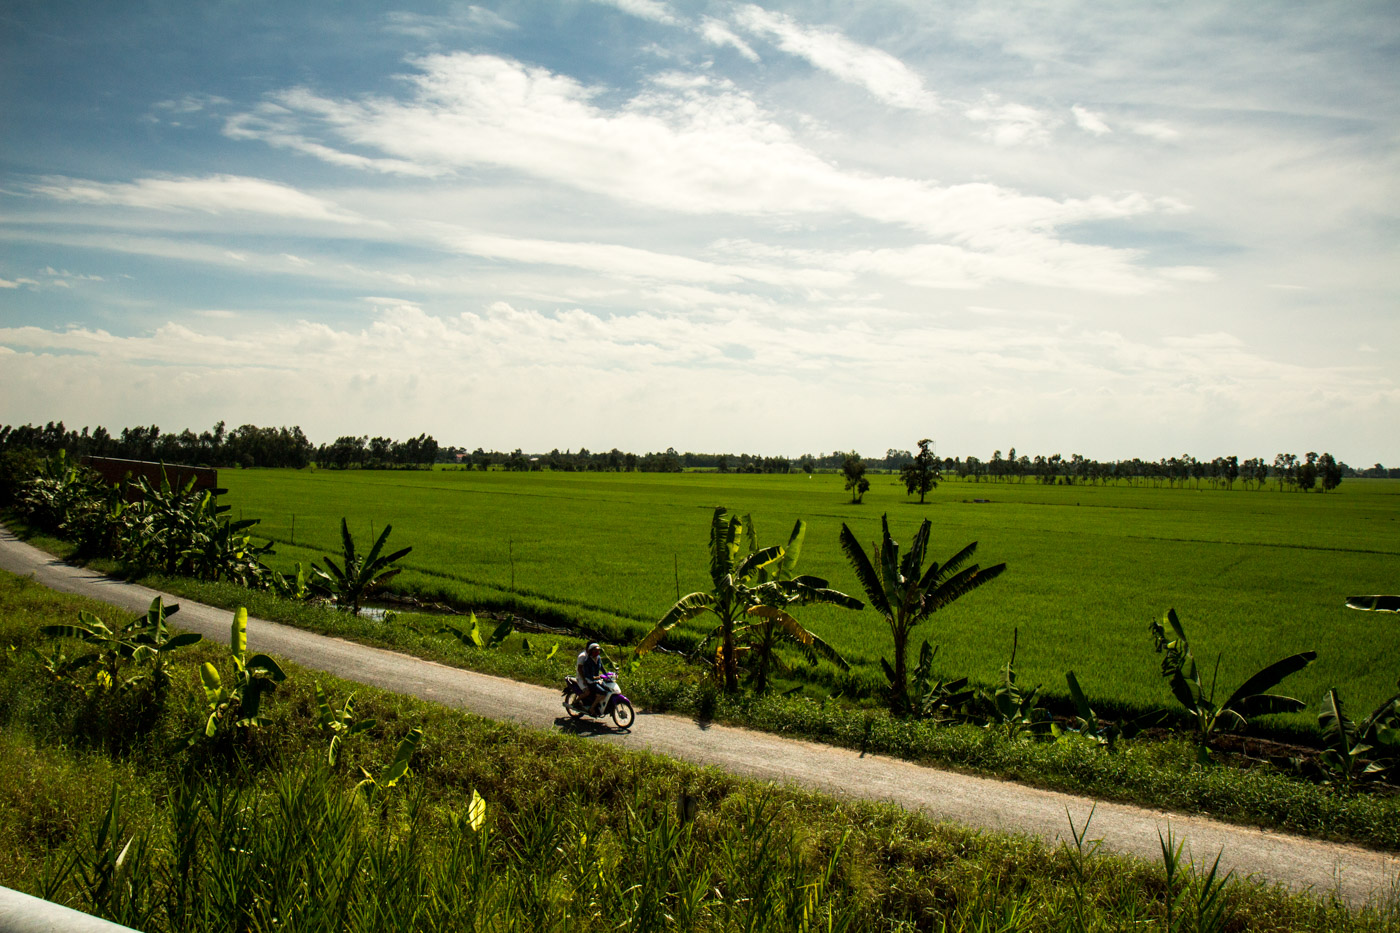 In the green countryside.